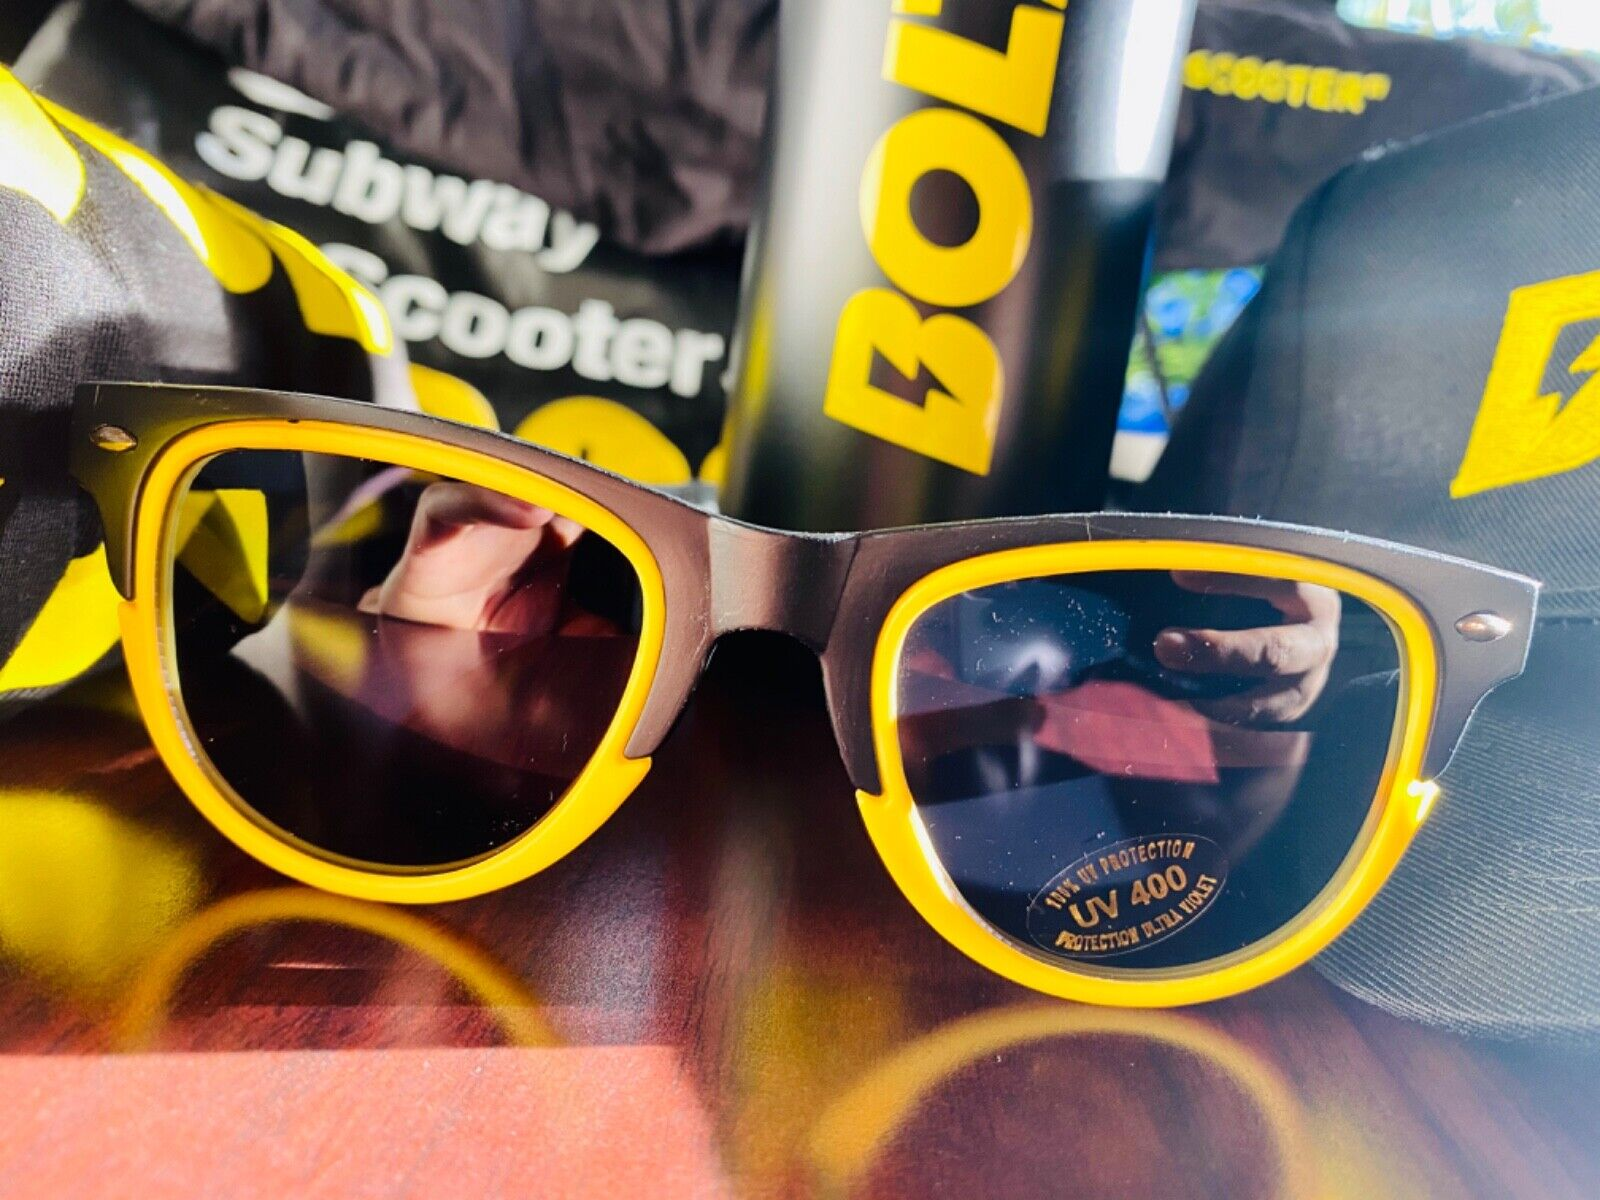 NEW ! / BOLT : Subway to Scooter : Limited Edition : Hat, Sunglasses, Water Bott